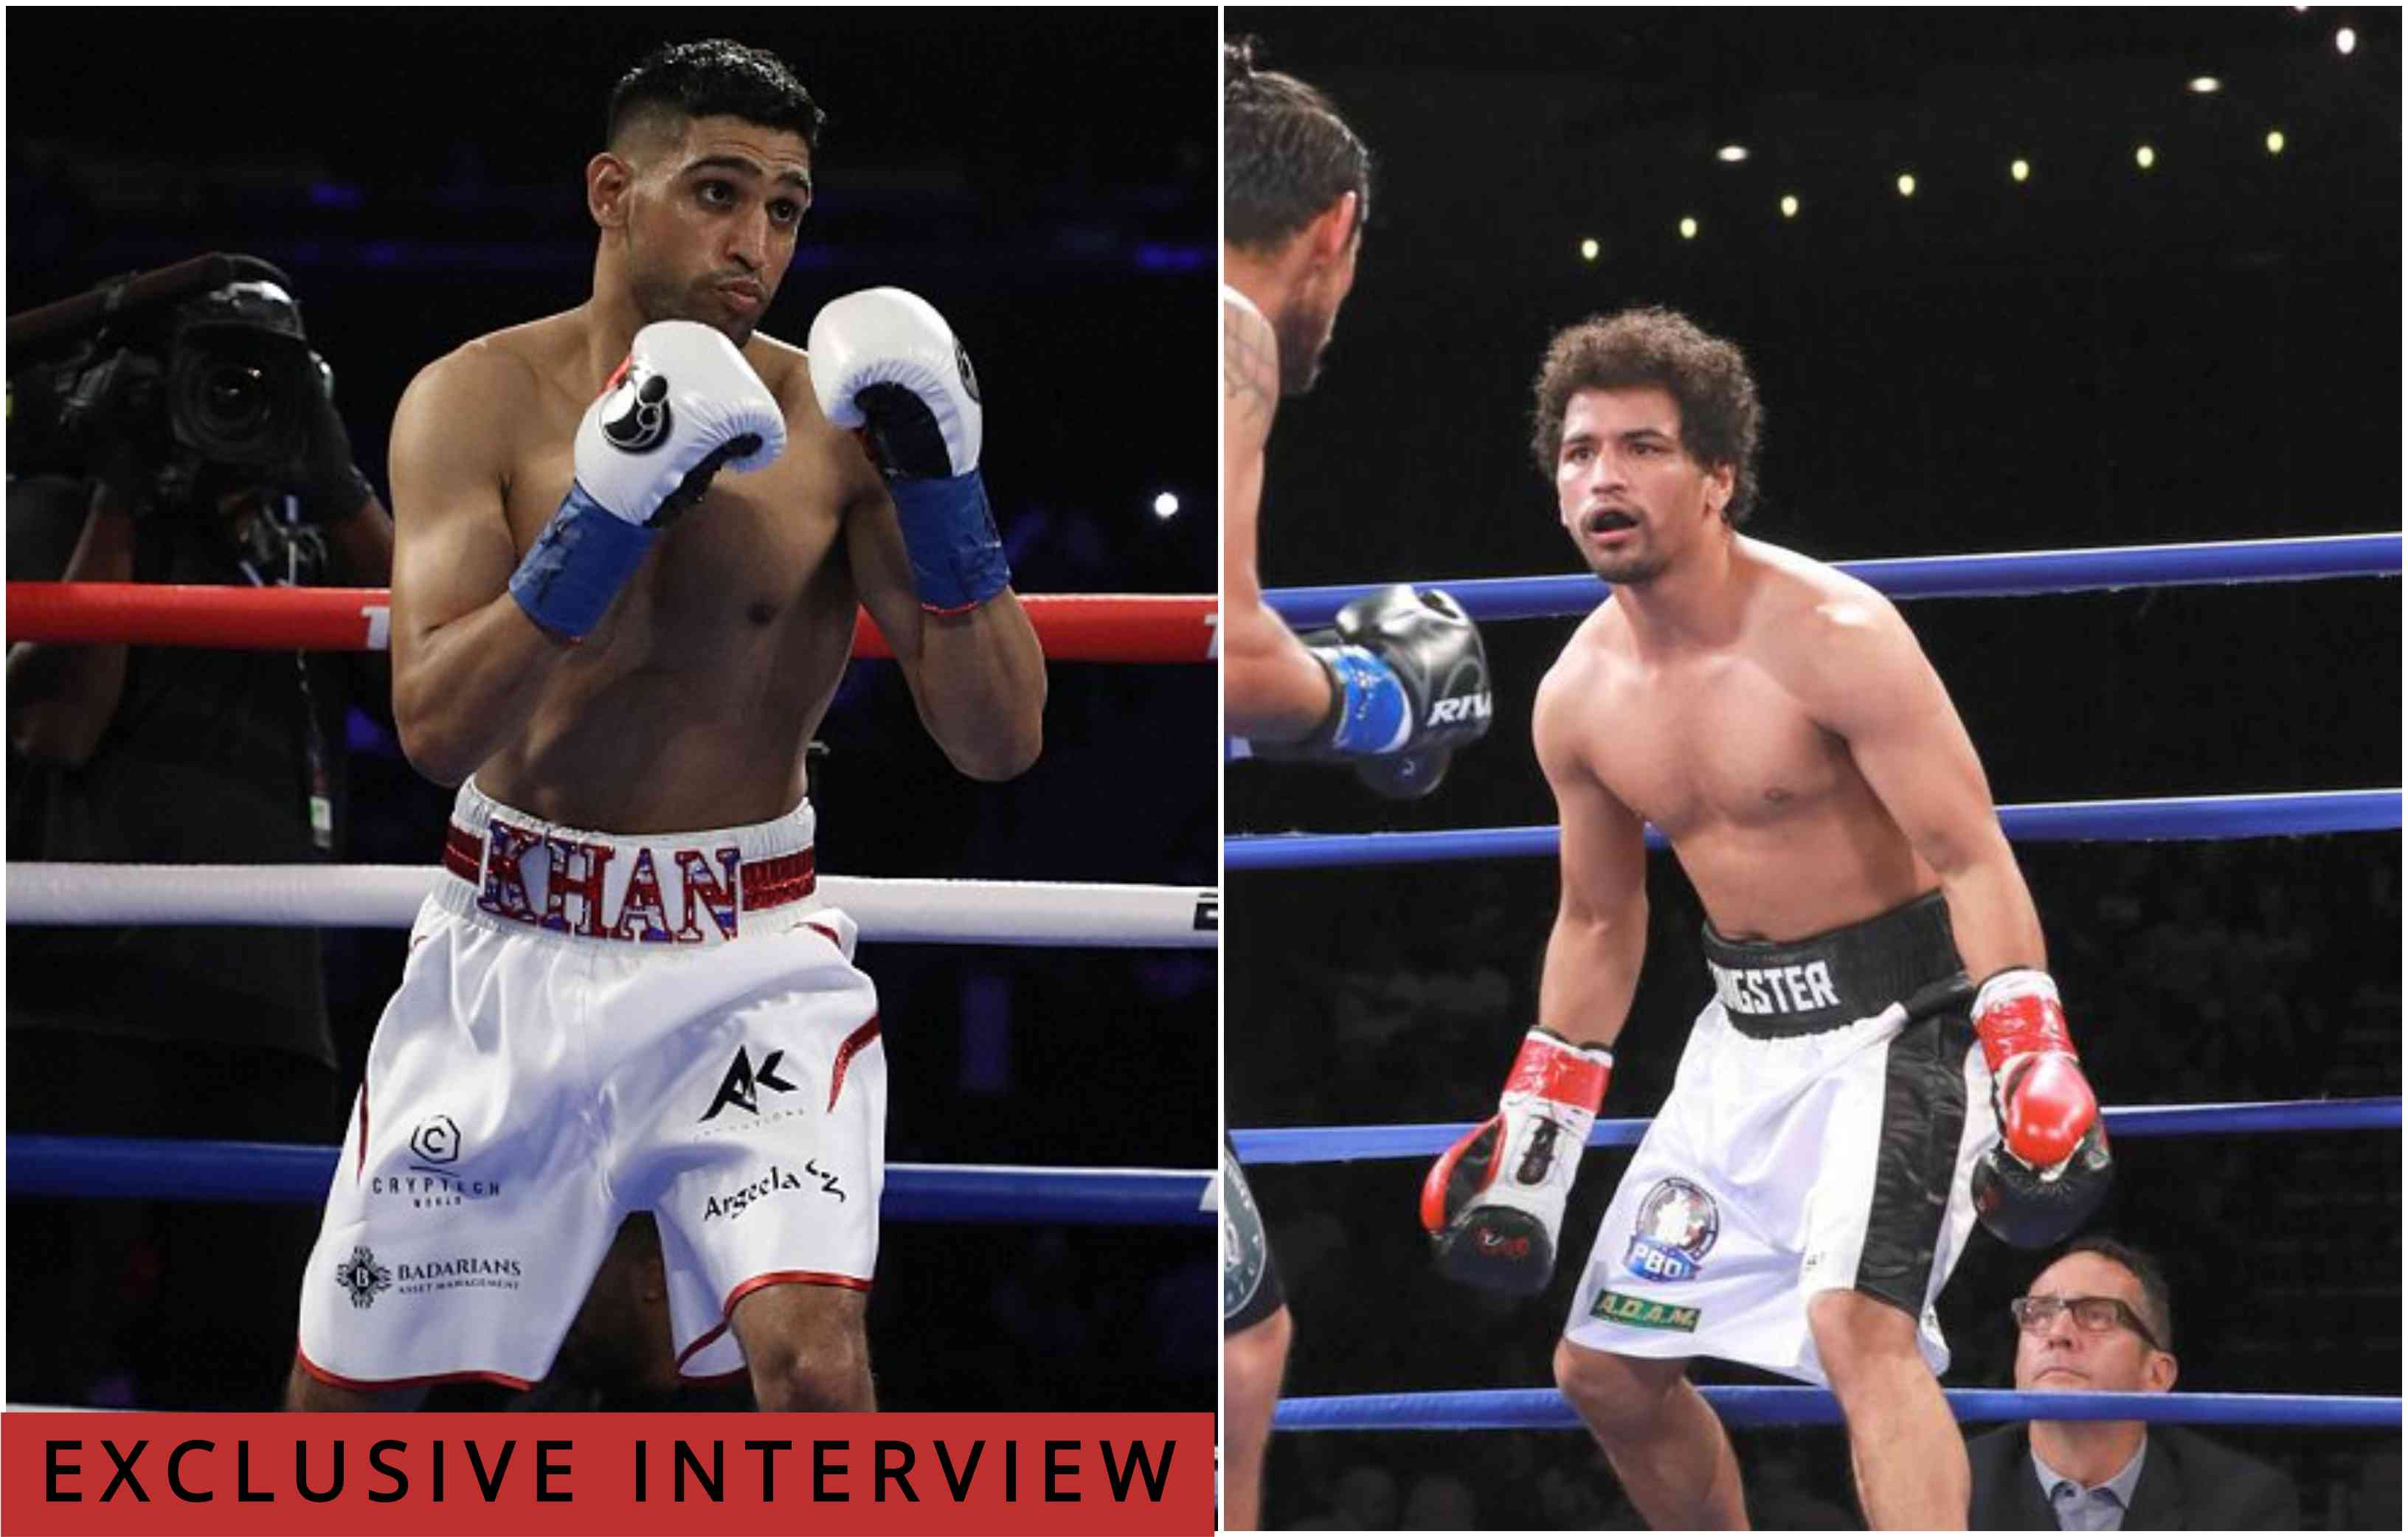 MMA India Exclusive with Neeraj Goyat: Fighting Amir Khan is history in the making - Khan